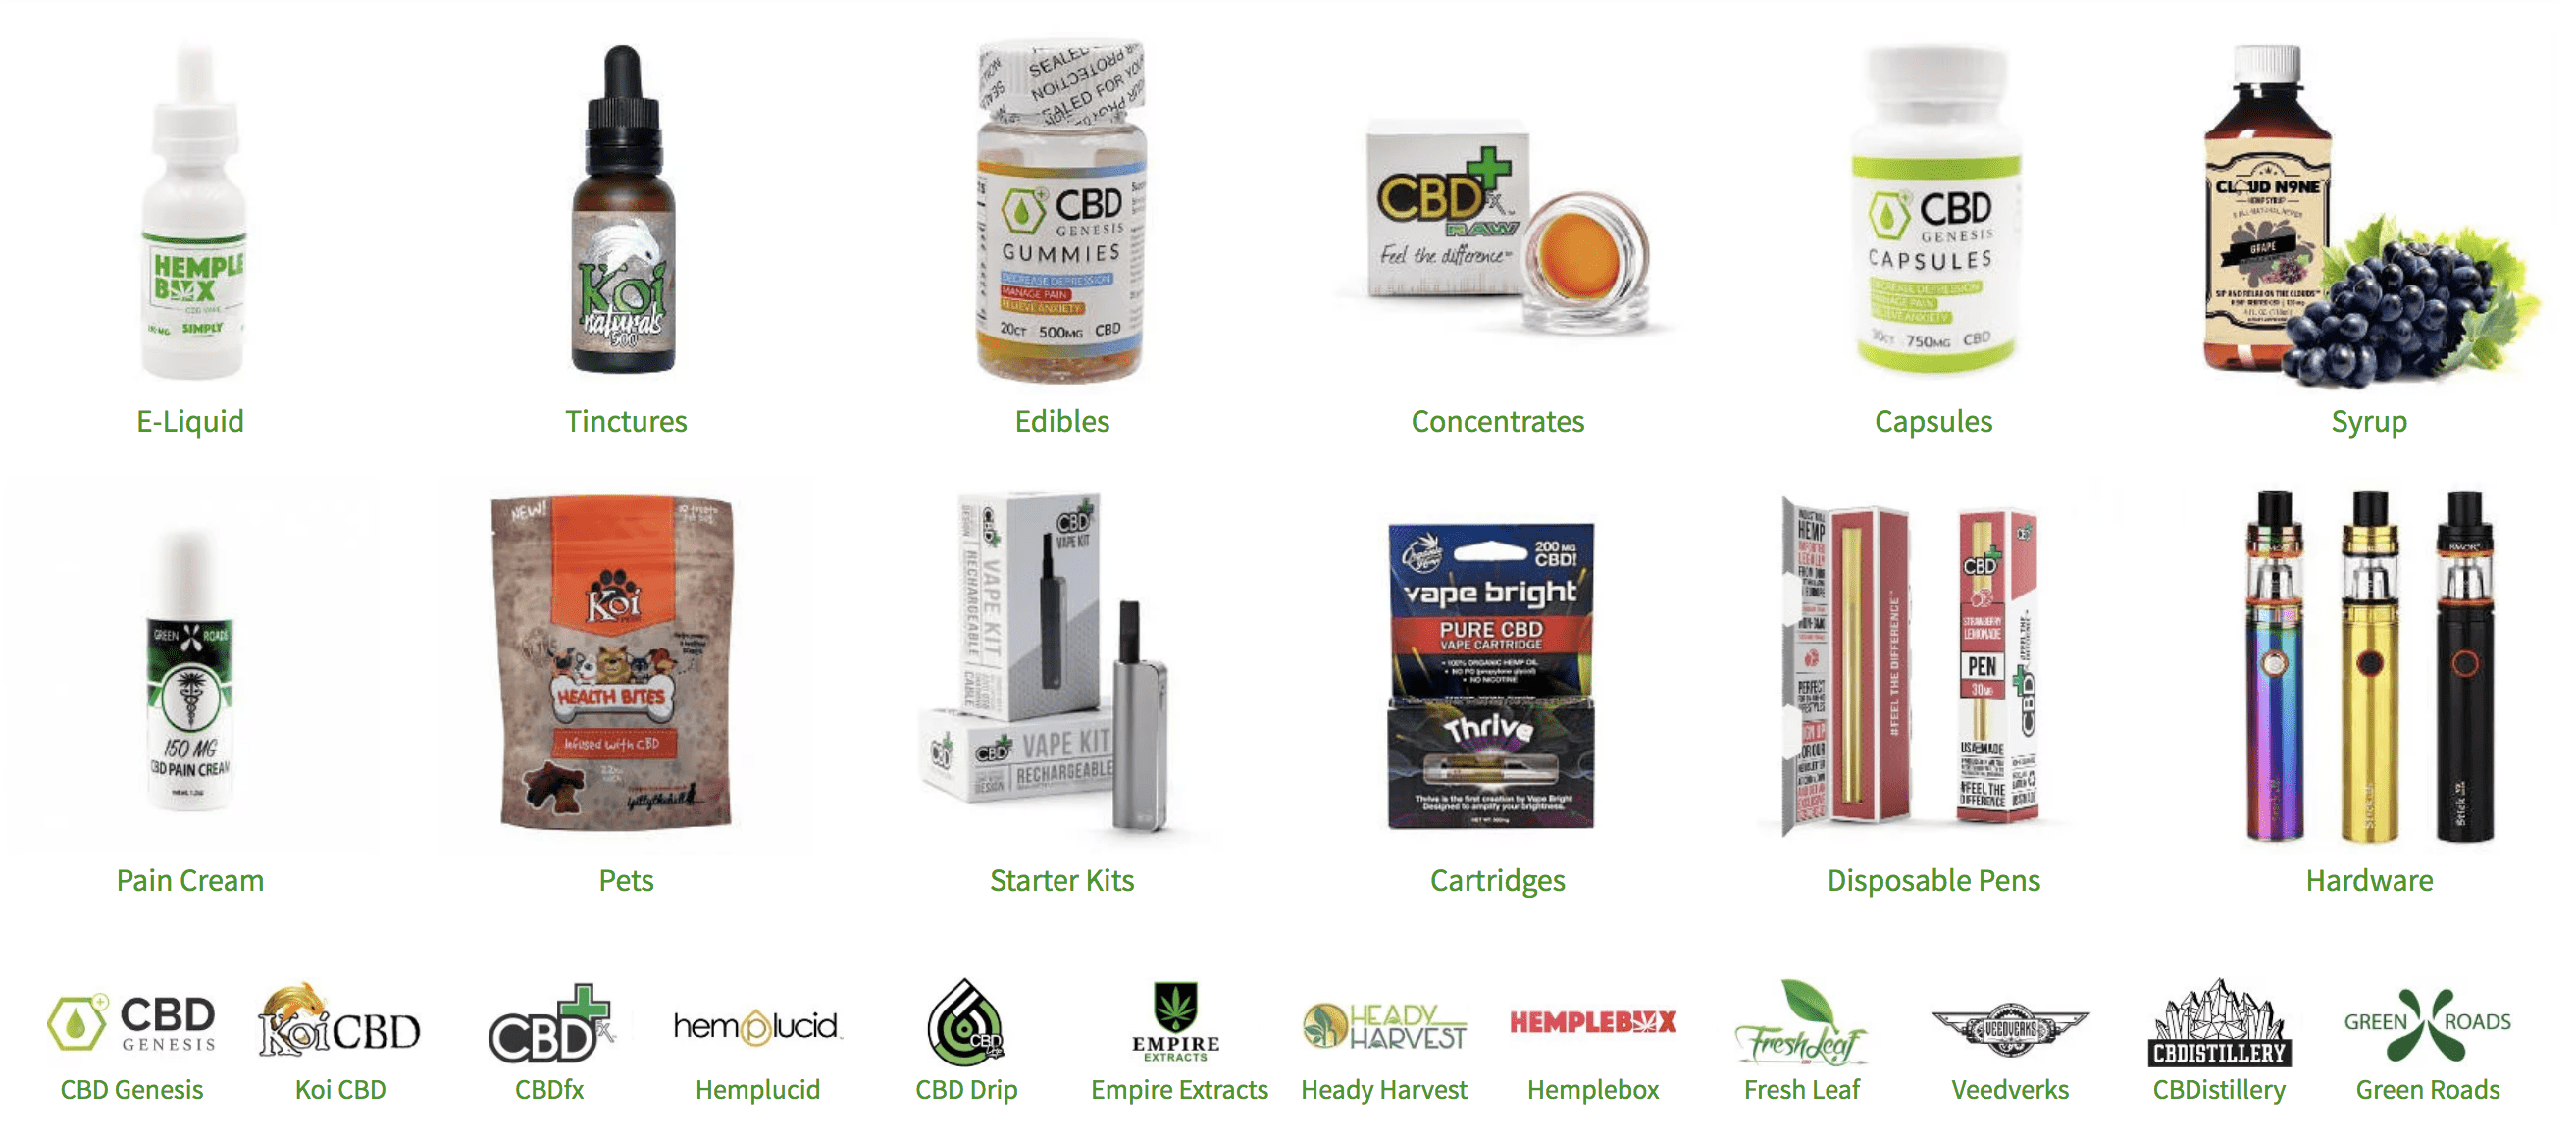 CBD Genesis Coupon Codes - Hemp Online